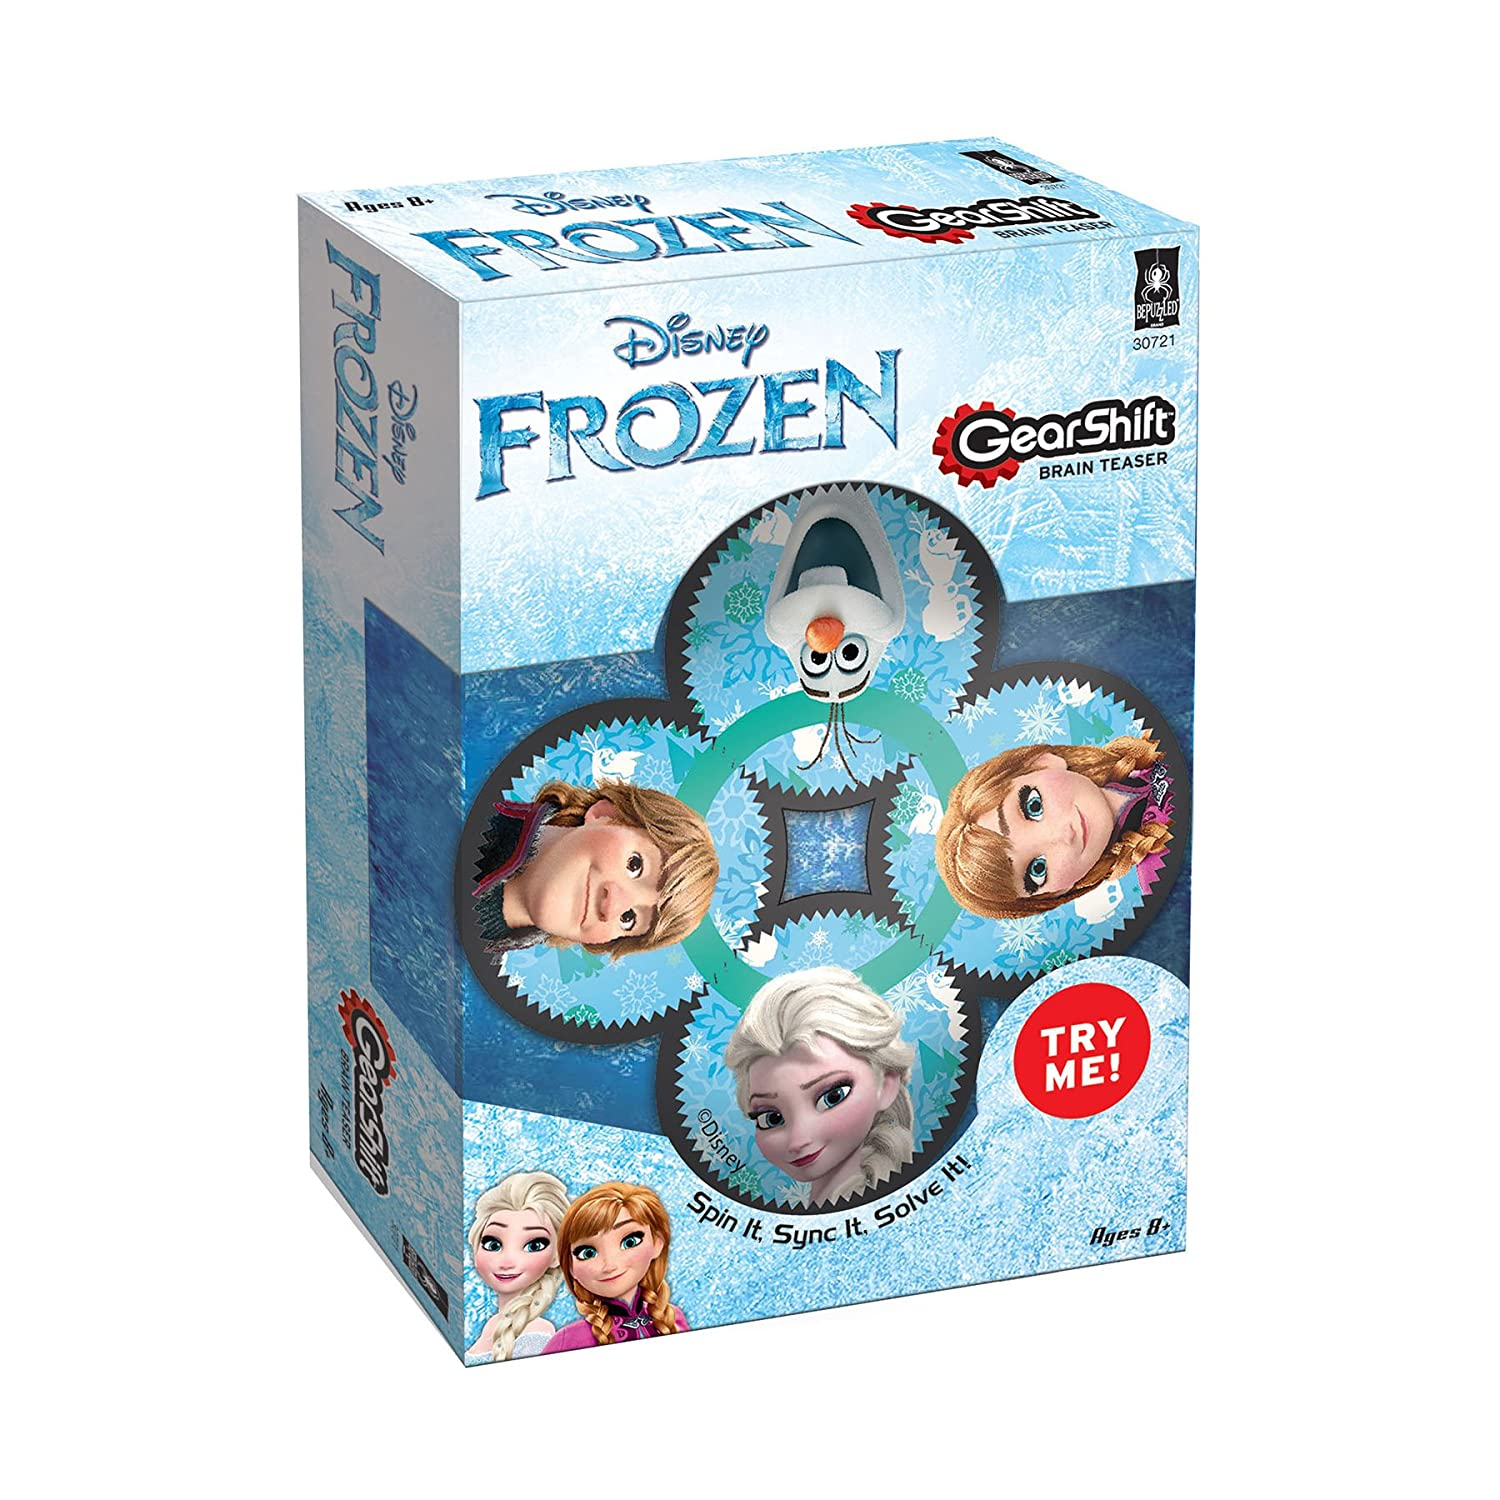 BePuzzled Frozen Gearshift Puzzle (4 Pieces) 30721